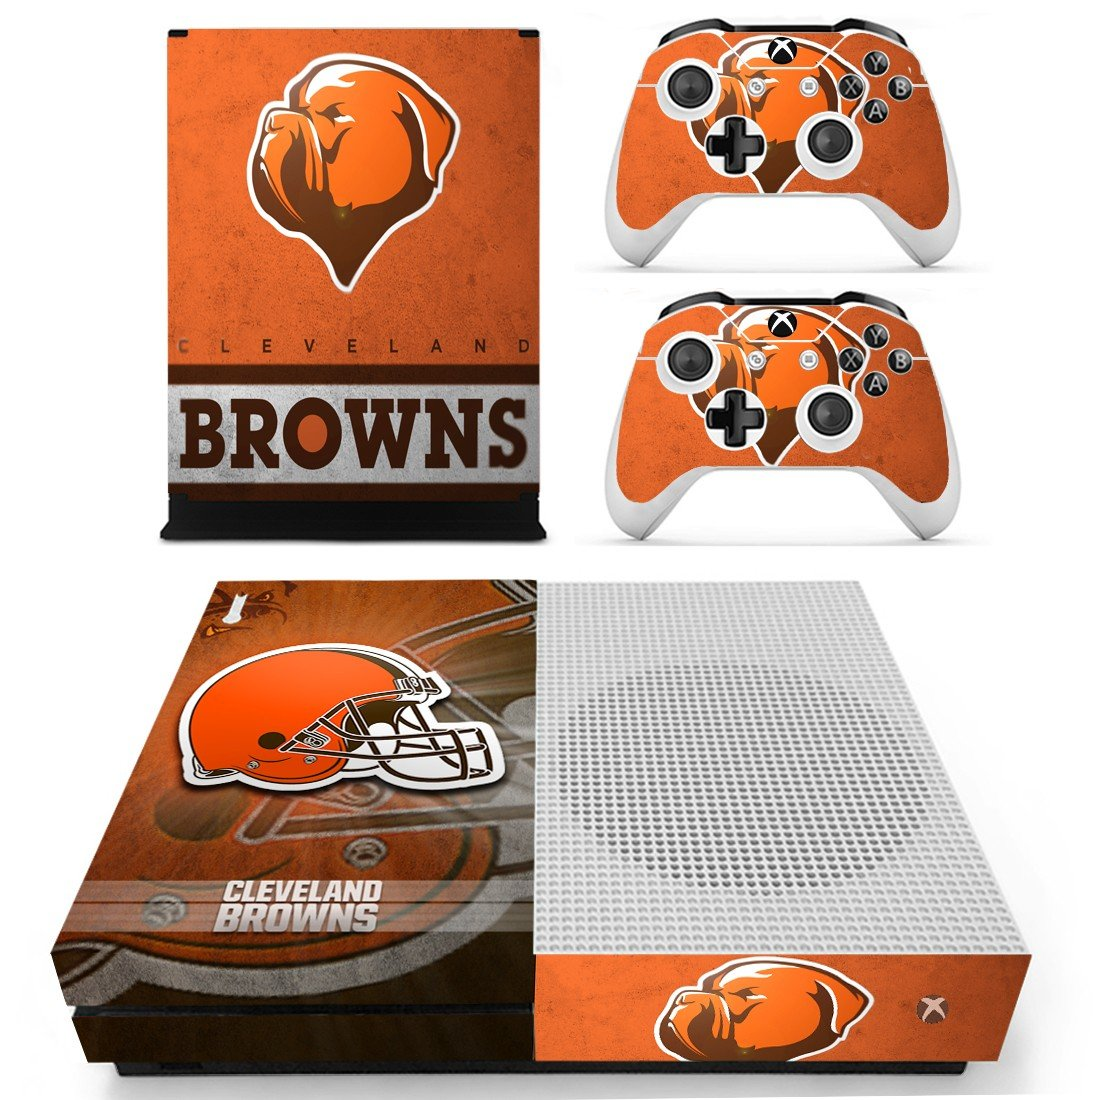 Cleveland Browns decal skin sticker for Xbox One S console and controllers